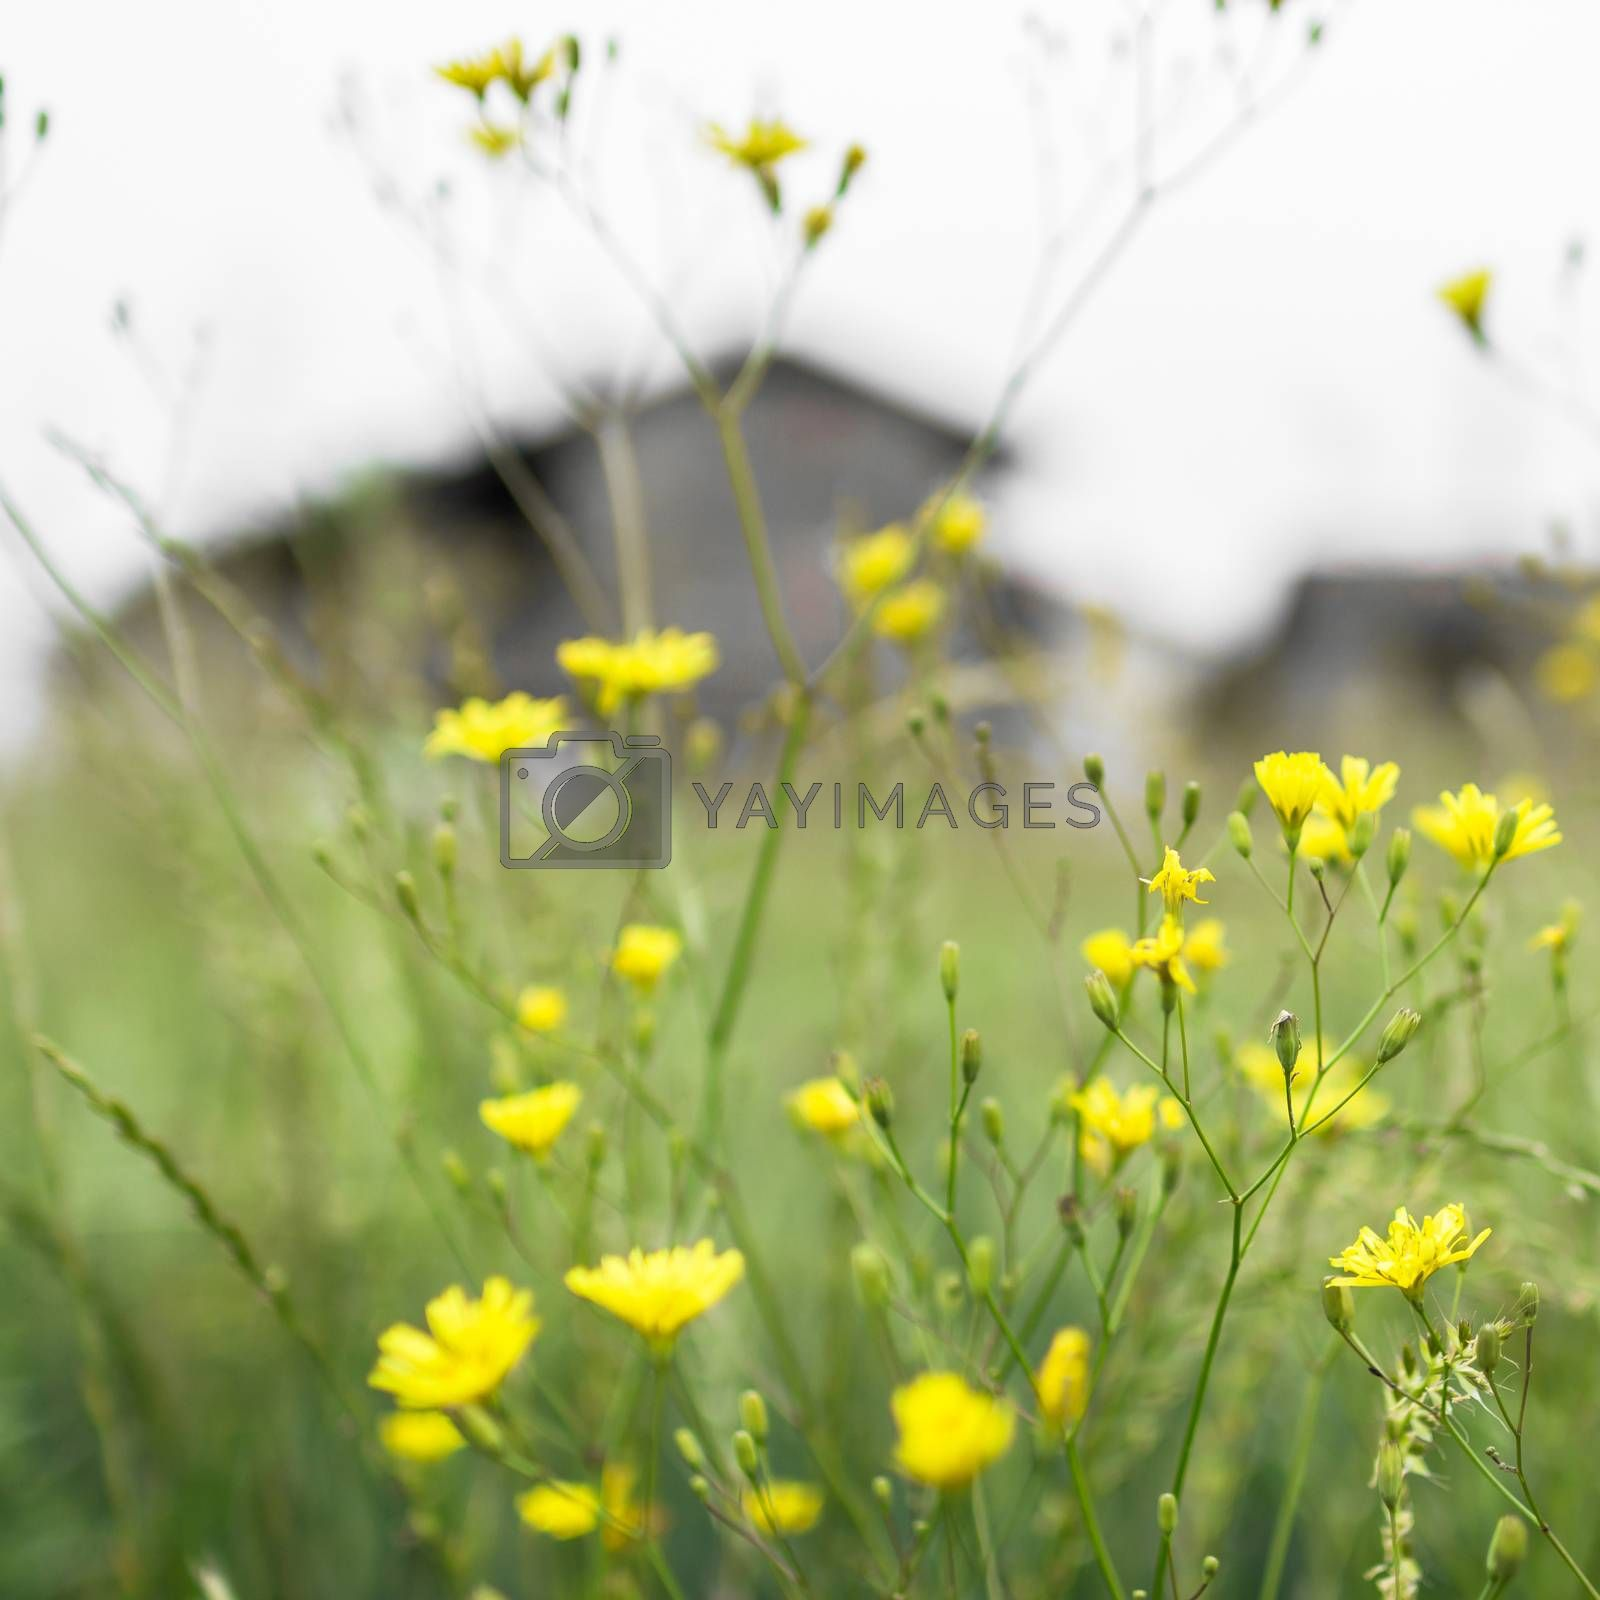 Beautiful flowers and blurred farm in the background.